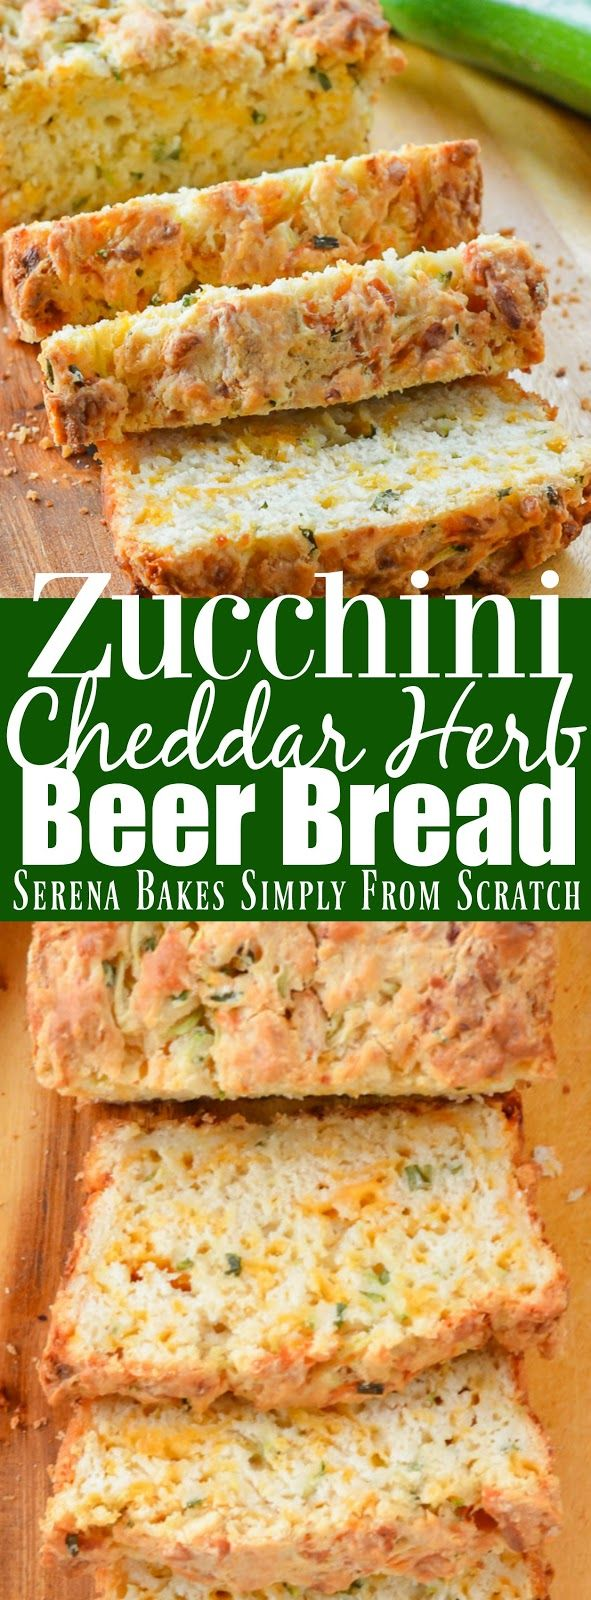 Zucchini Cheddar Cheese Herb Beer Bread   Serena Bakes Simply From Scratch